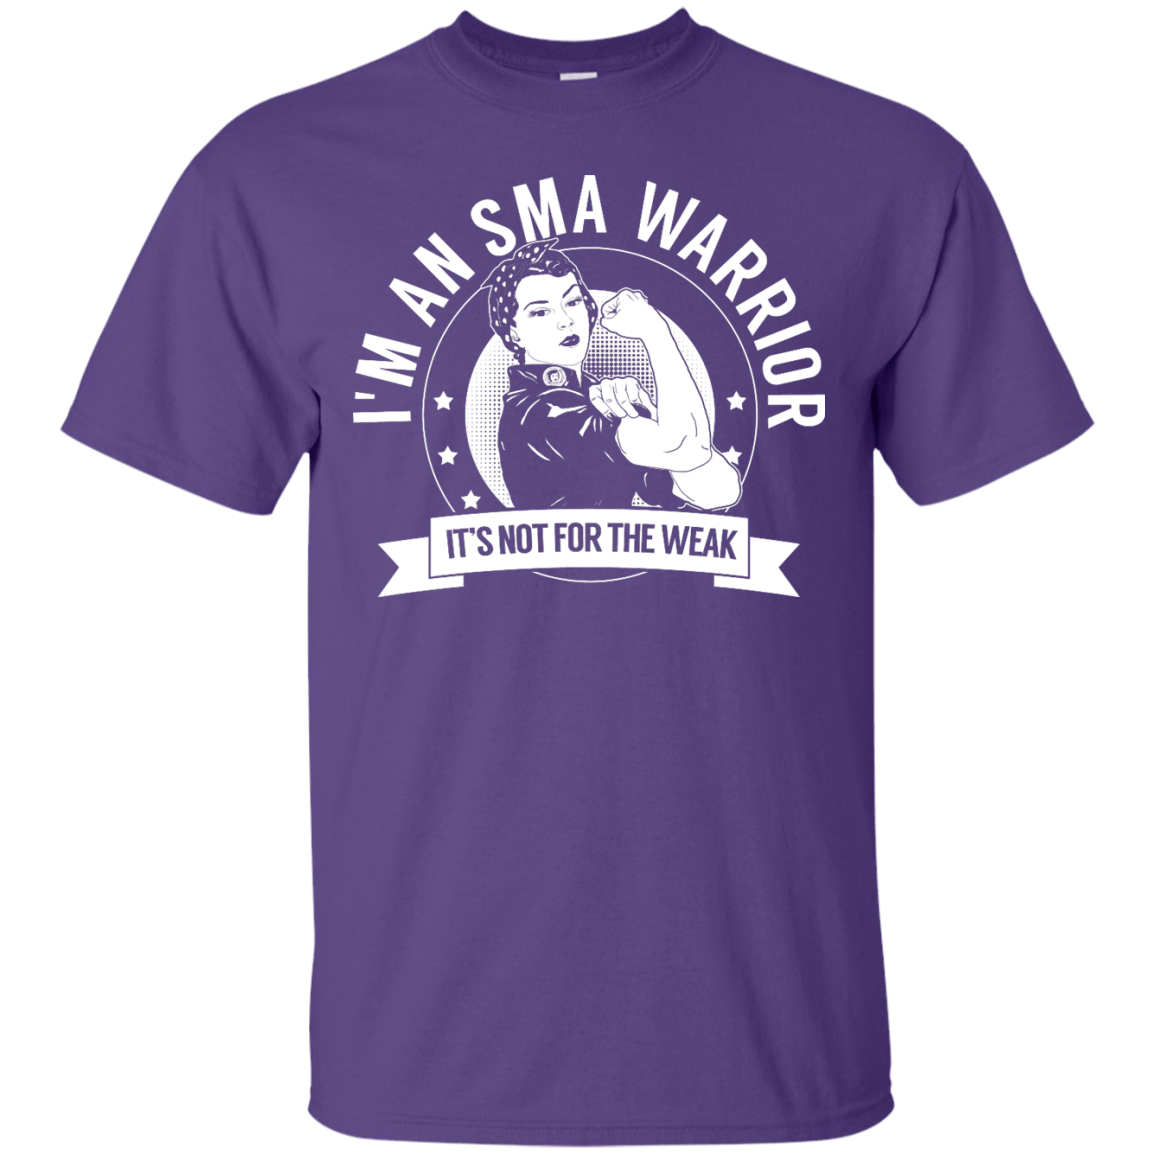 T-Shirts - Spinal Muscular Atrophy - SMA Warrior Not For The Weak Unisex Shirt